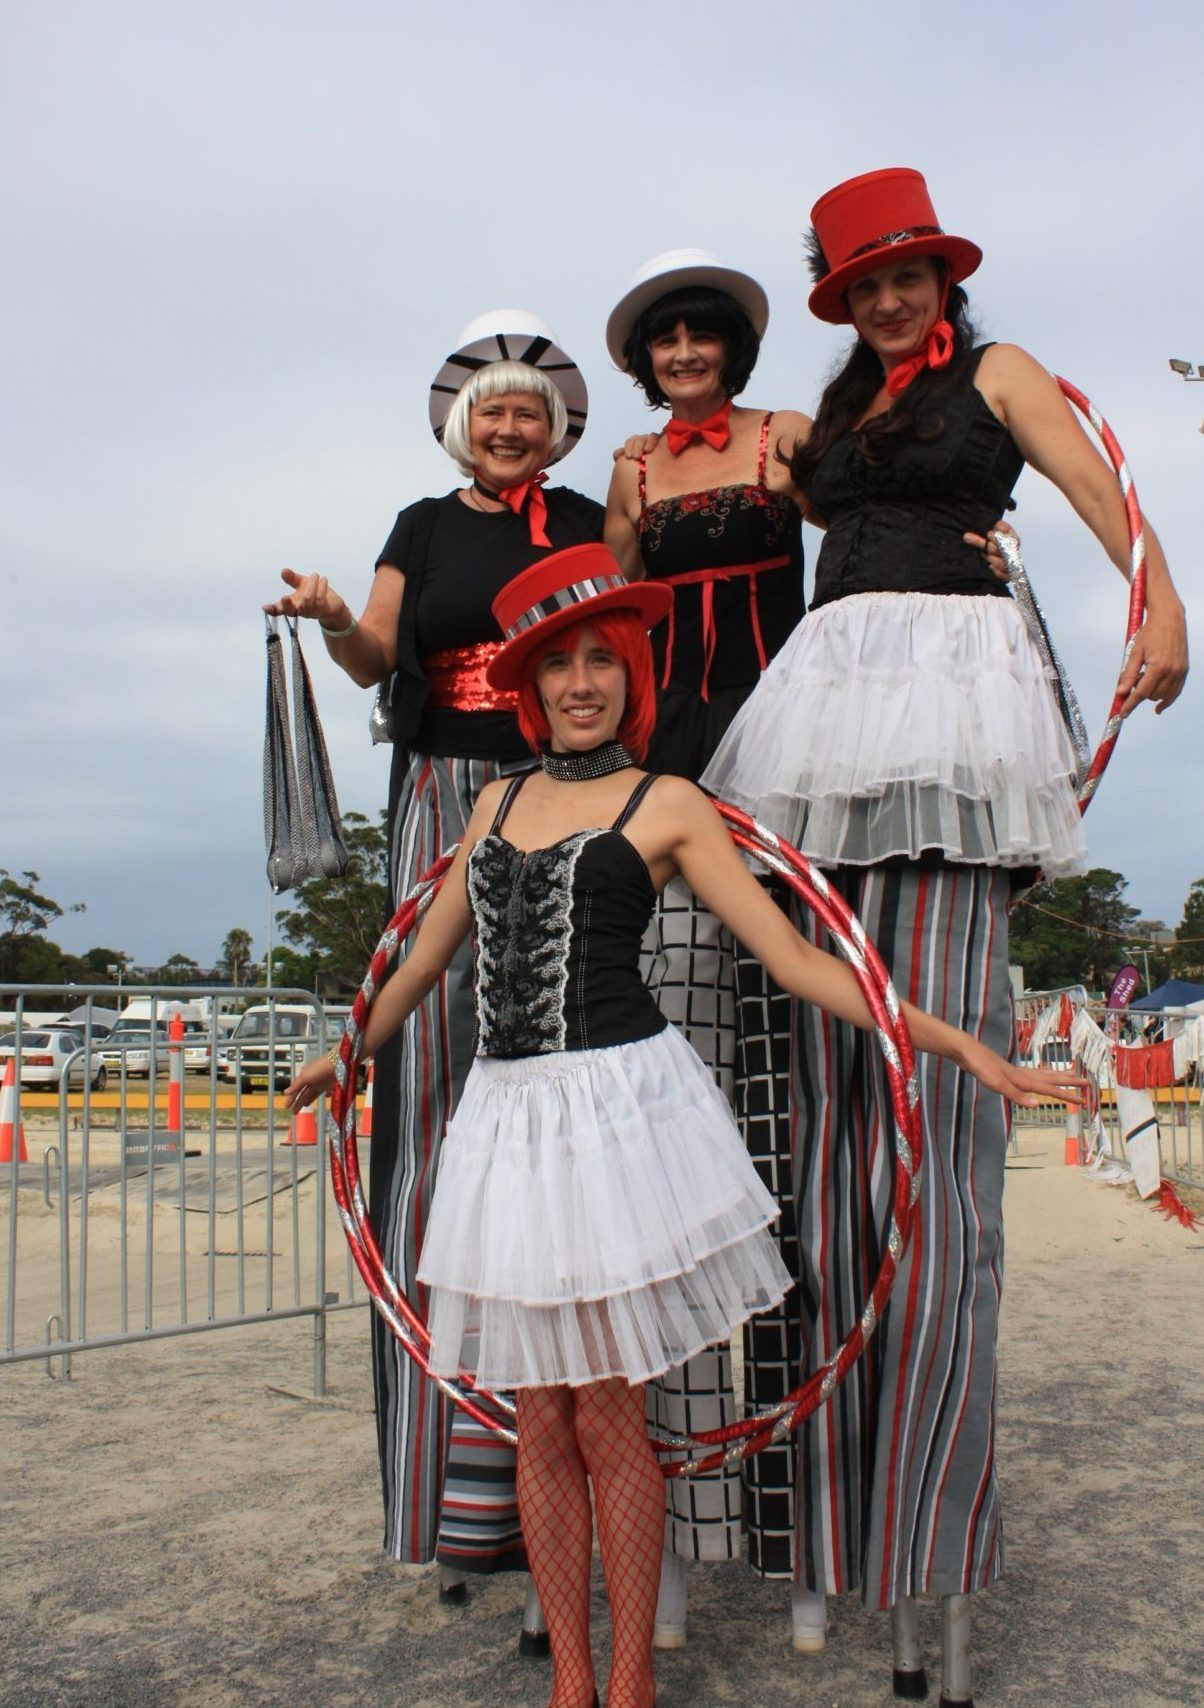 The Red, White and Black Circus